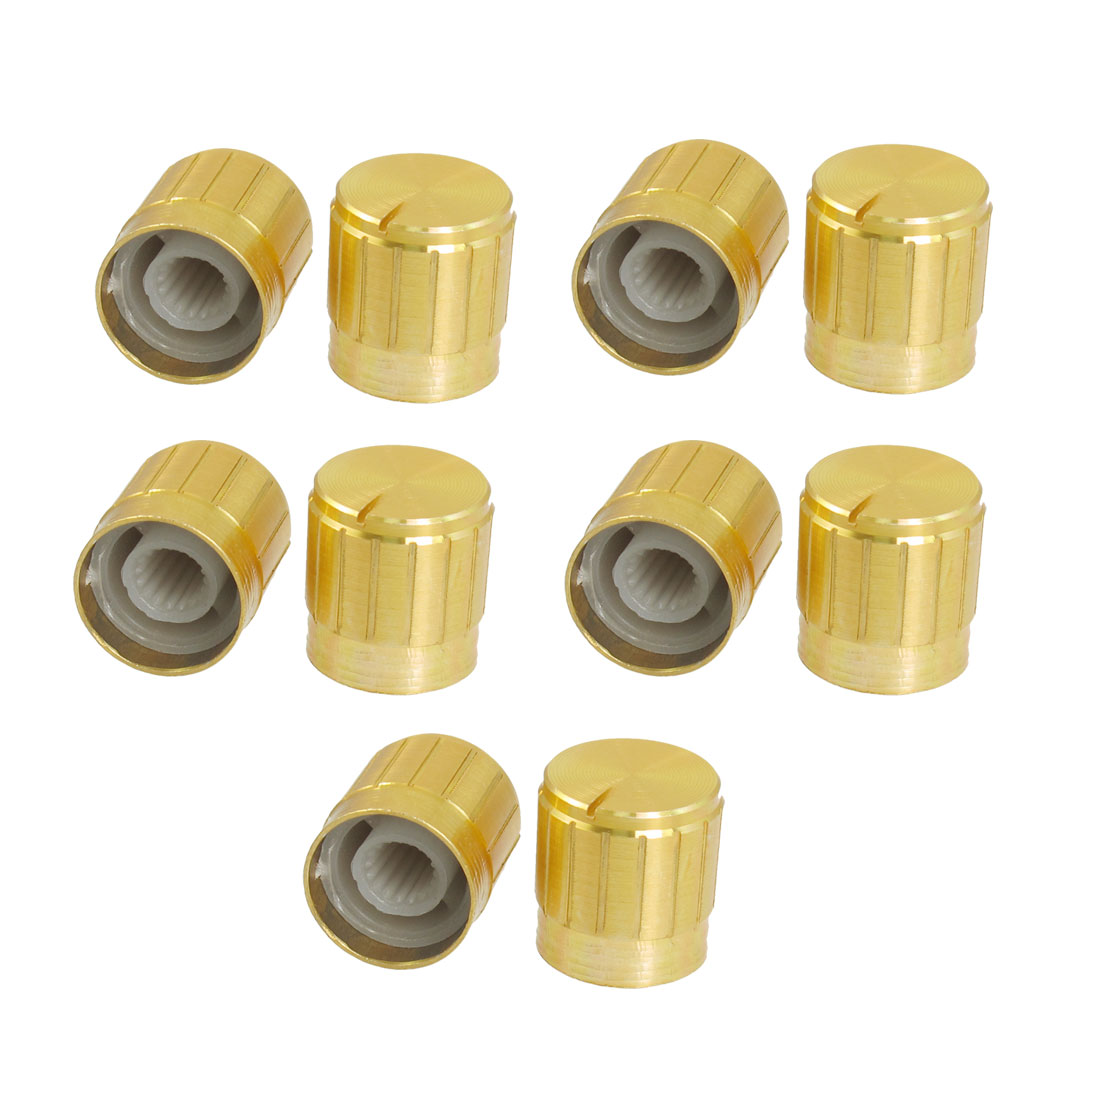 10 Pcs Gold Tone 6mm Knurled Shaft Insert Dia. Potentiometer Control Knobs